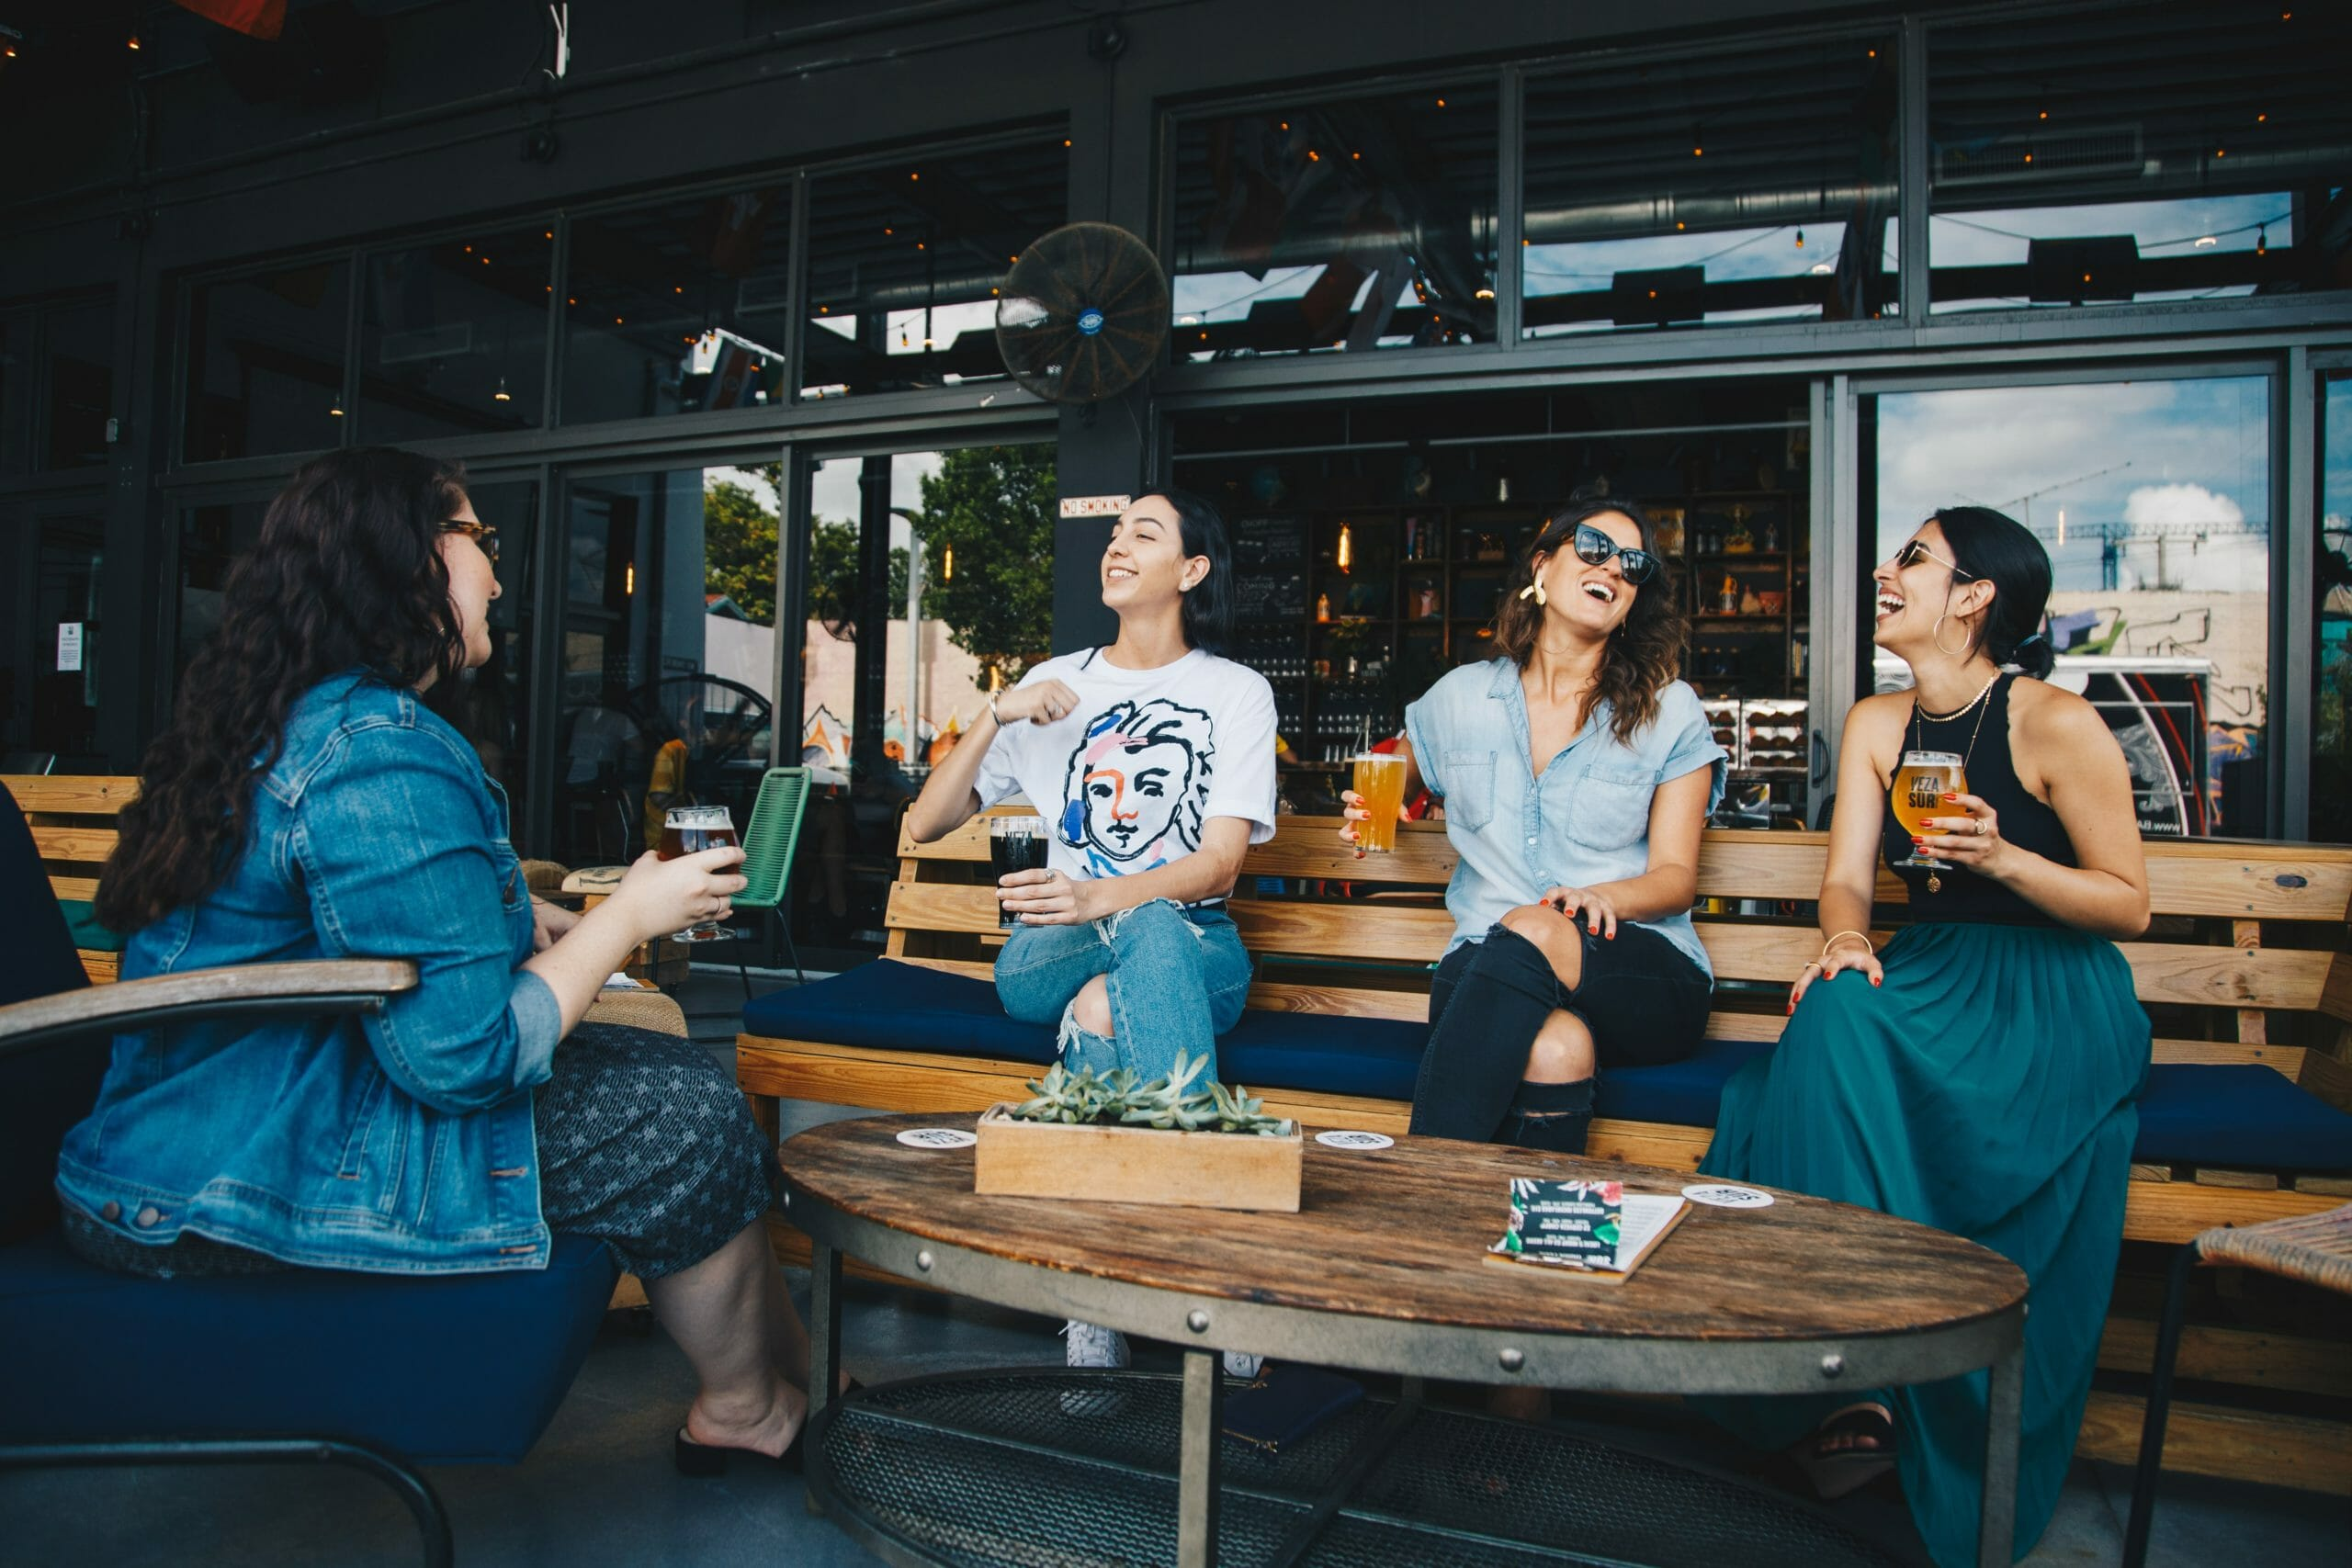 Introverts Networking Guide: Top Tips to Nail it Even if you Hate it